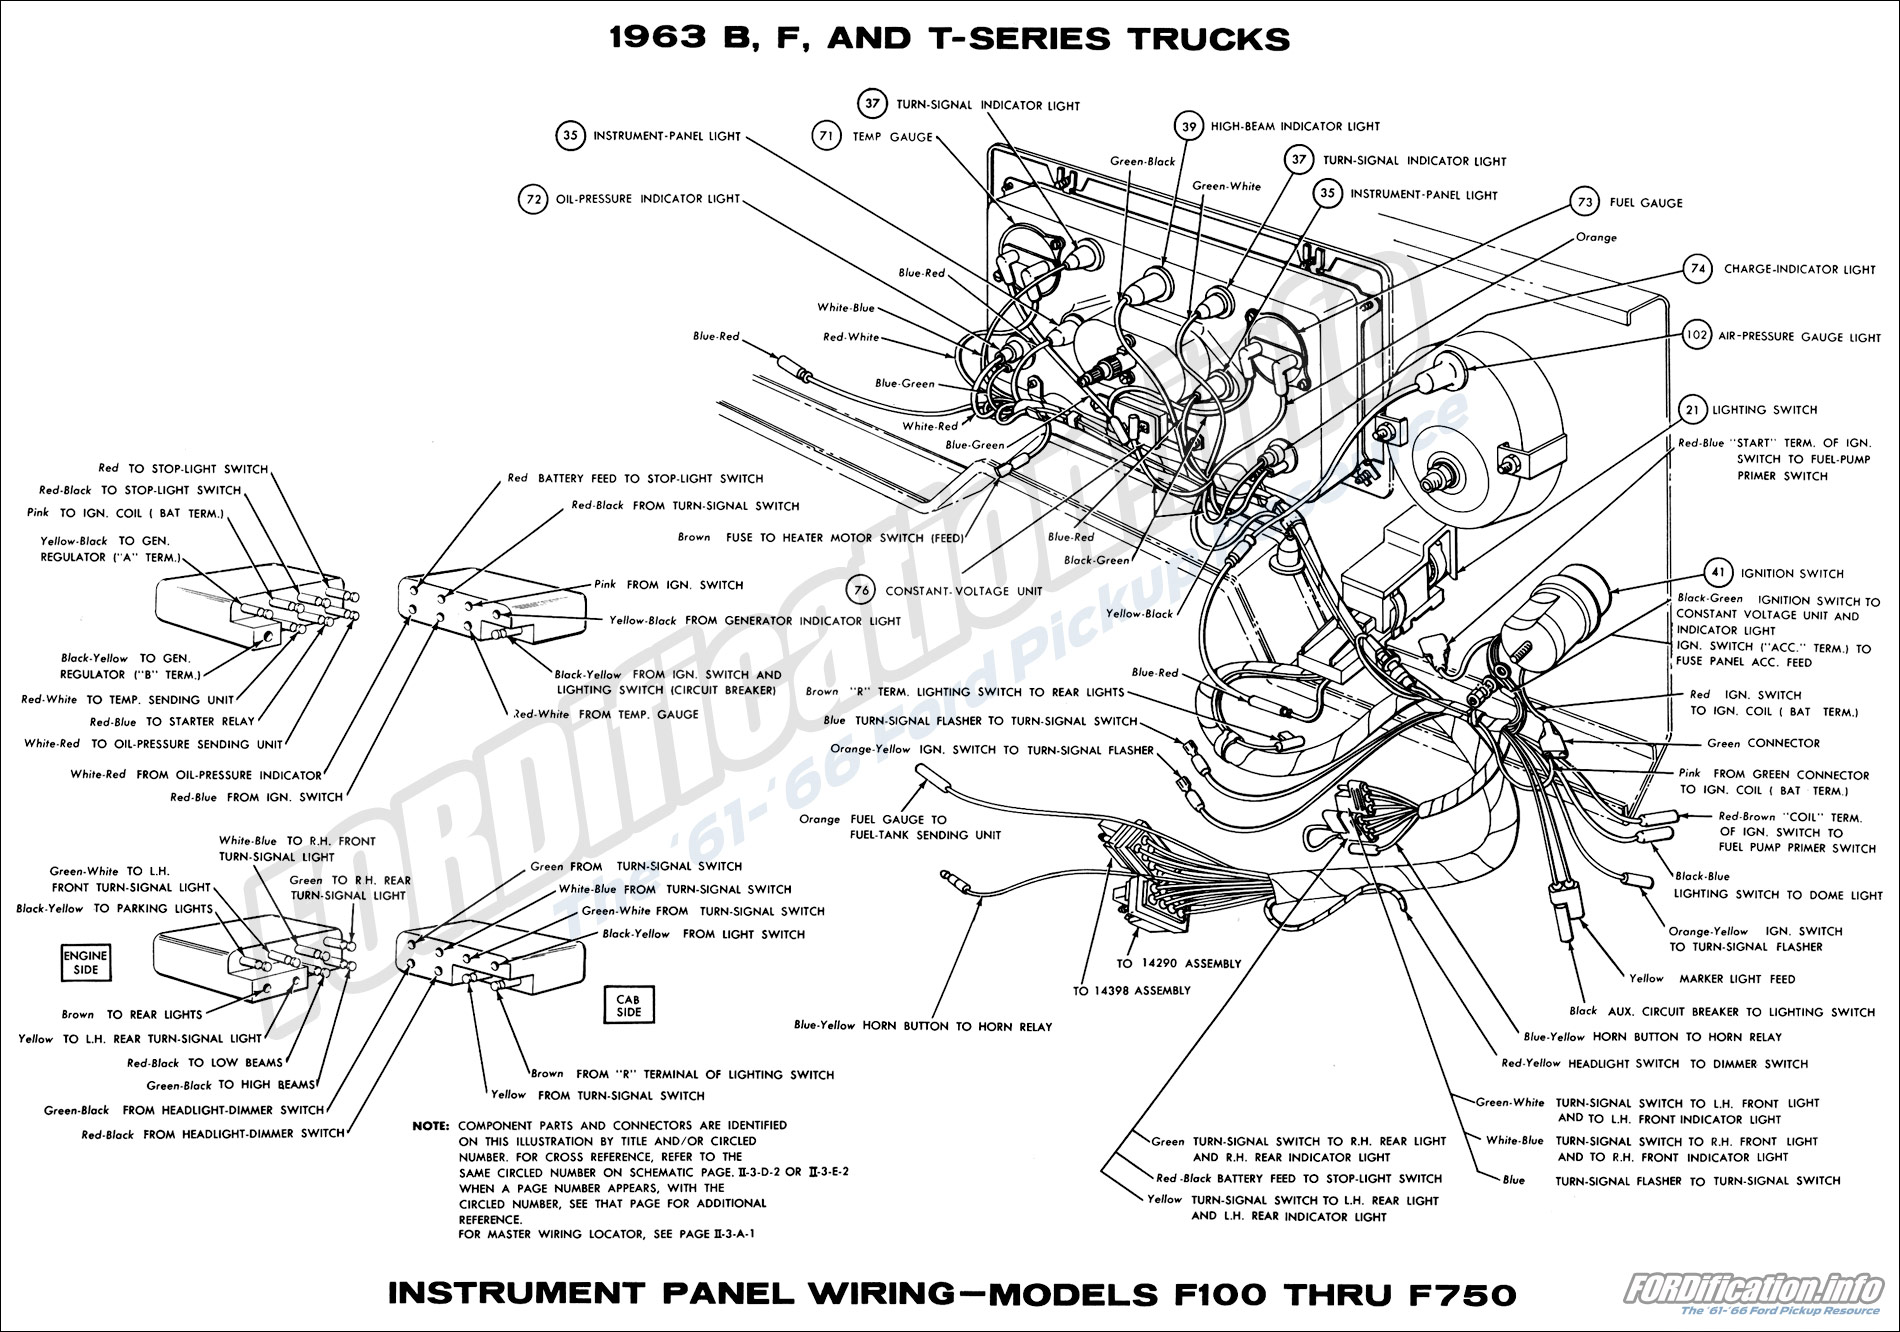 1963 F100 Signal Wiring Diagram on 1964 ford falcon light switch wiring diagram